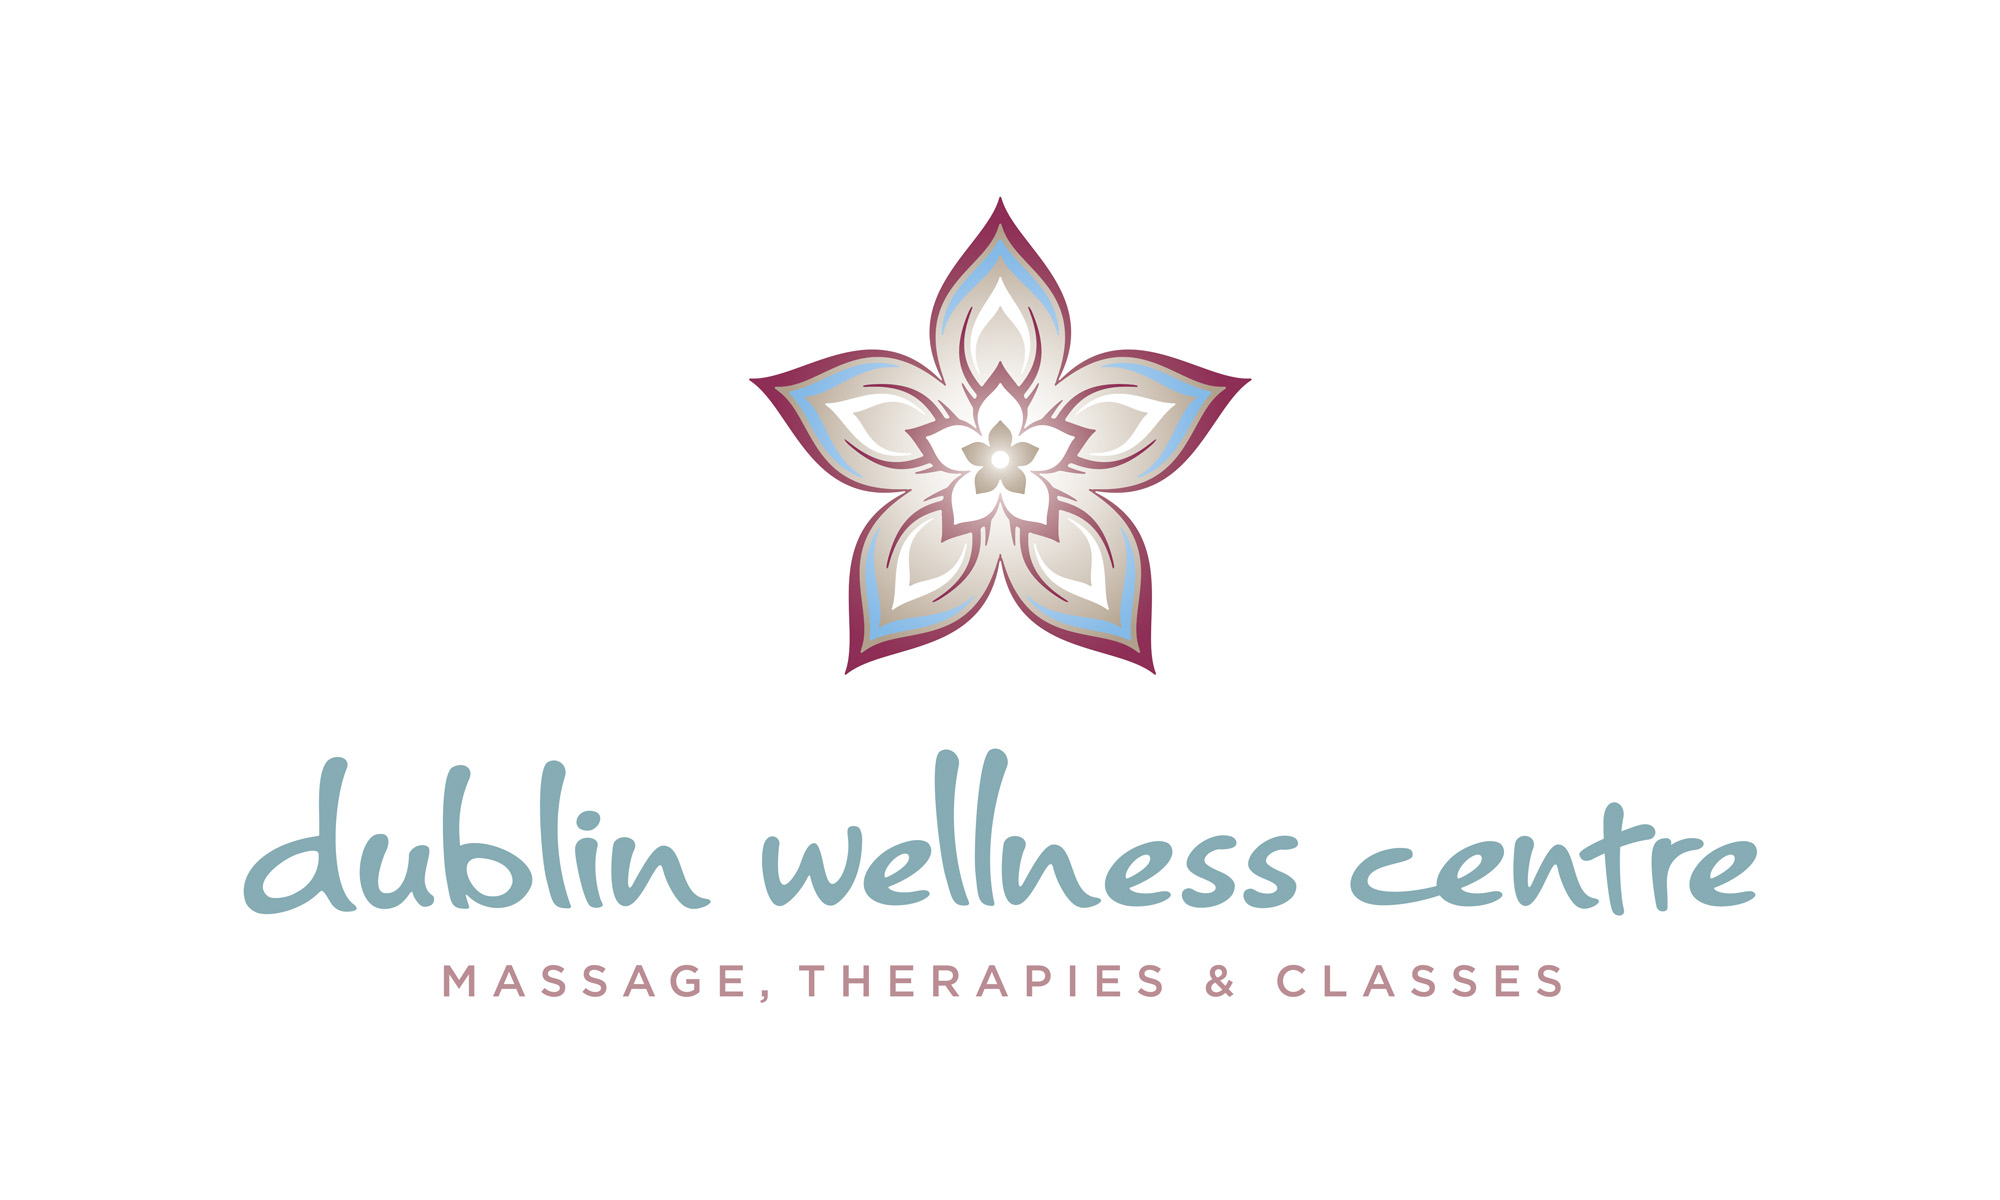 Logo for Dublin Wellness Centre